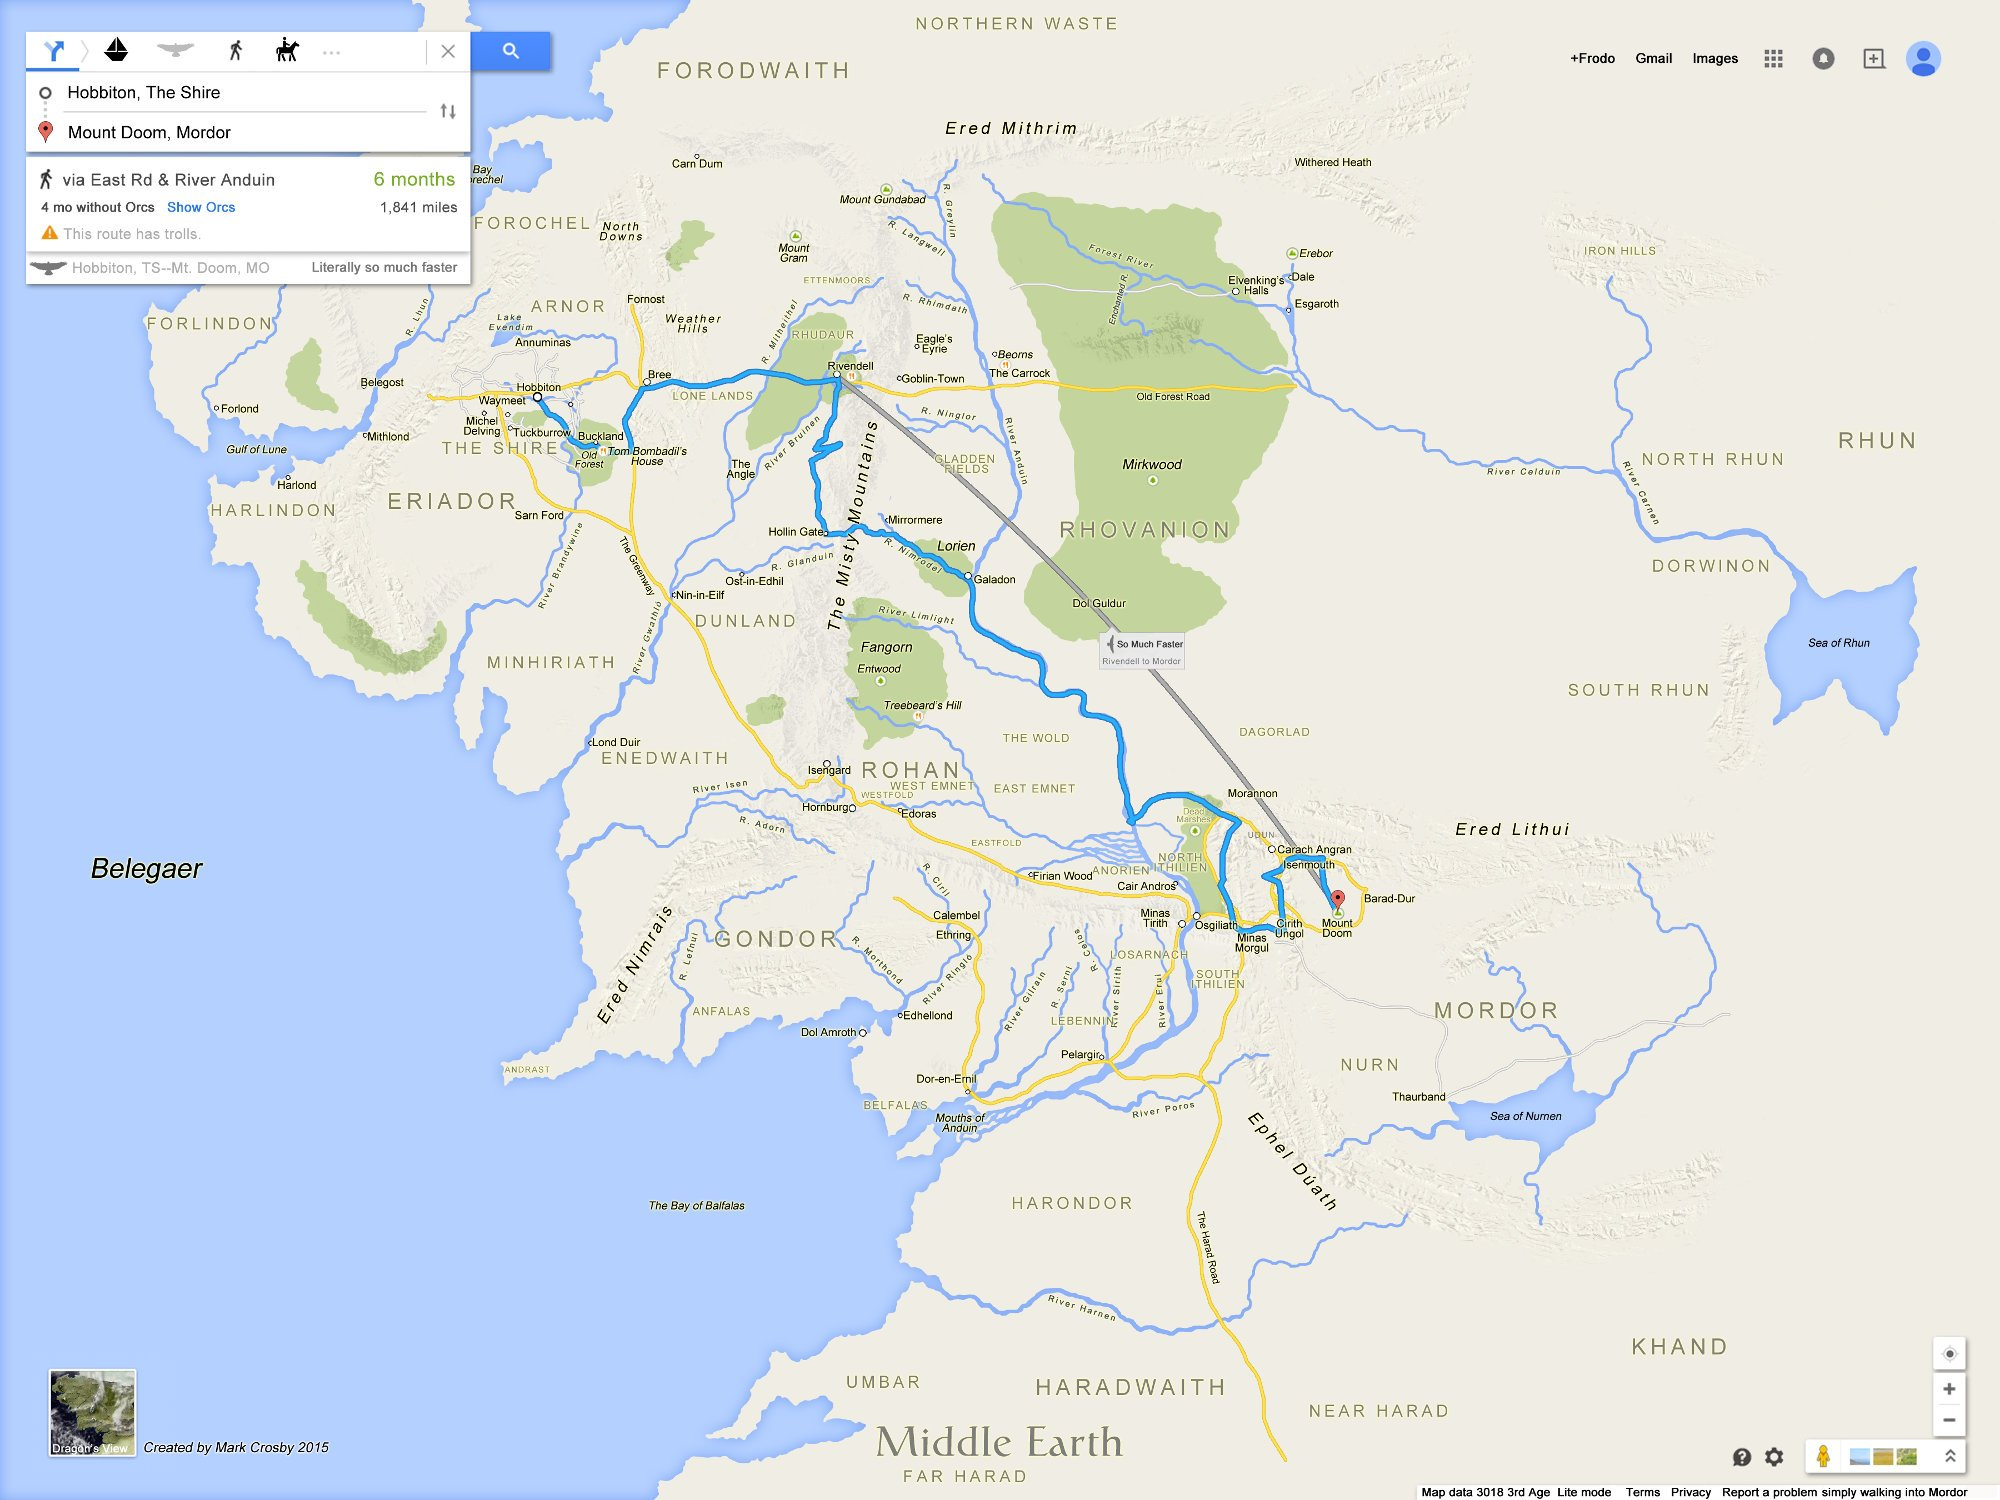 Maps Google Maps: Middle Earth As A Google Map